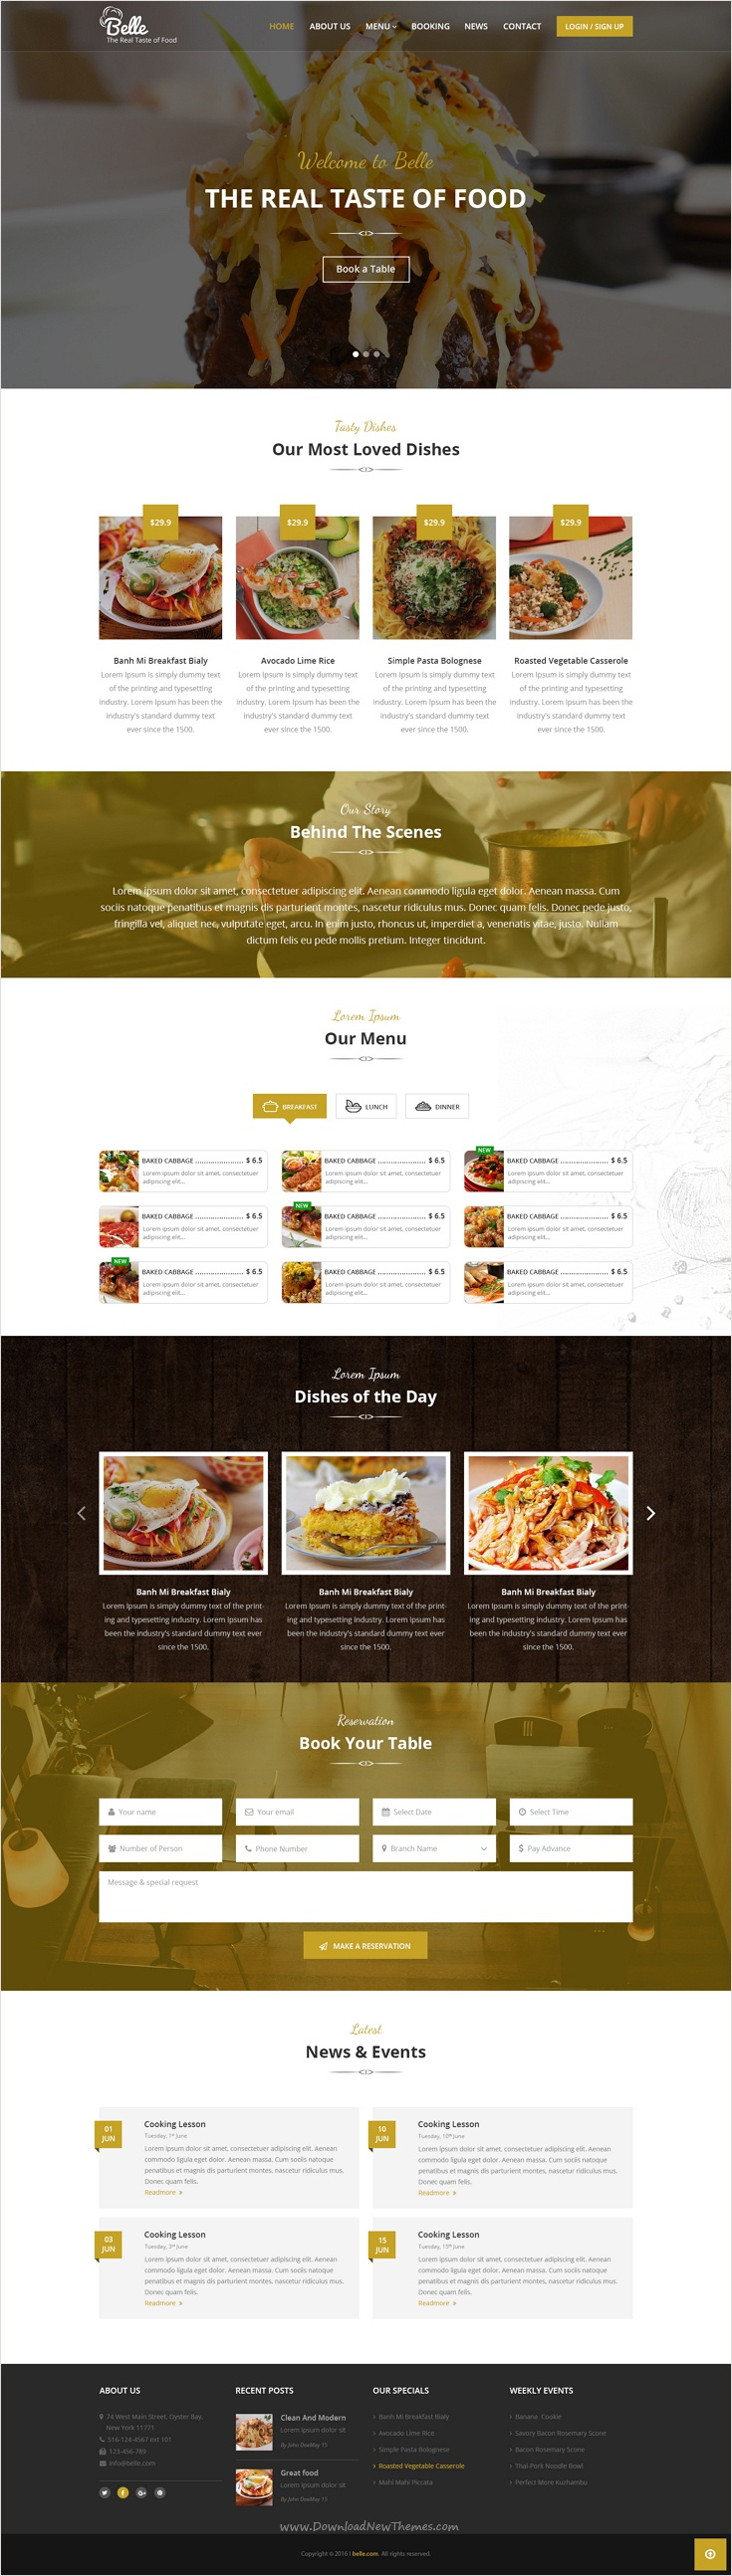 Belle is an amazing responsive 2 in